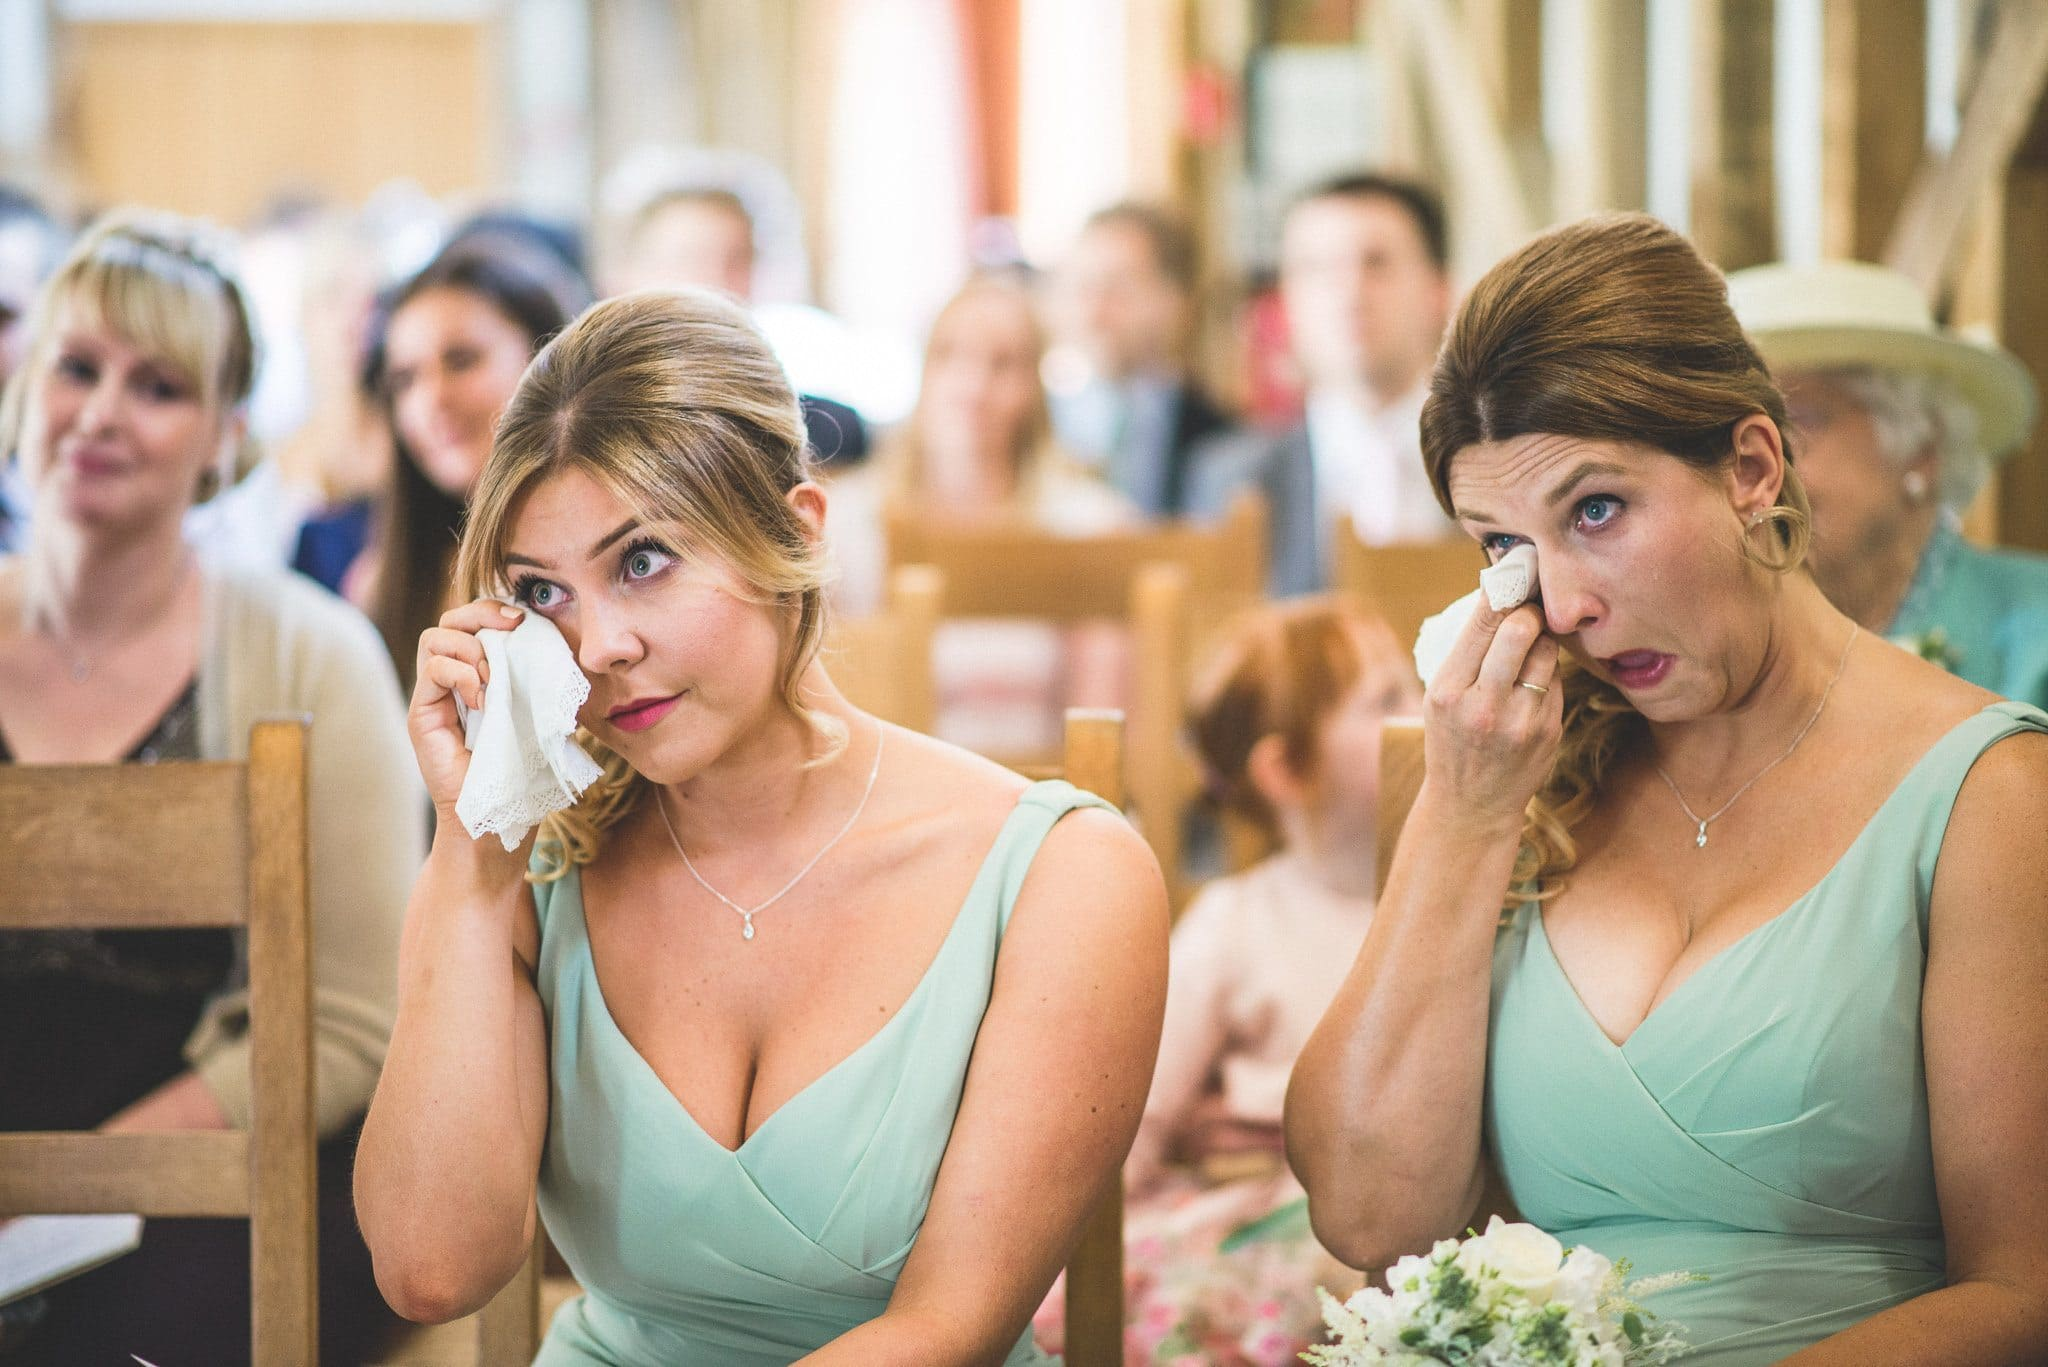 Two of the bridesmaids, wearing mint green dresses, simultaneously wipe tears from their eyes during the ceremony